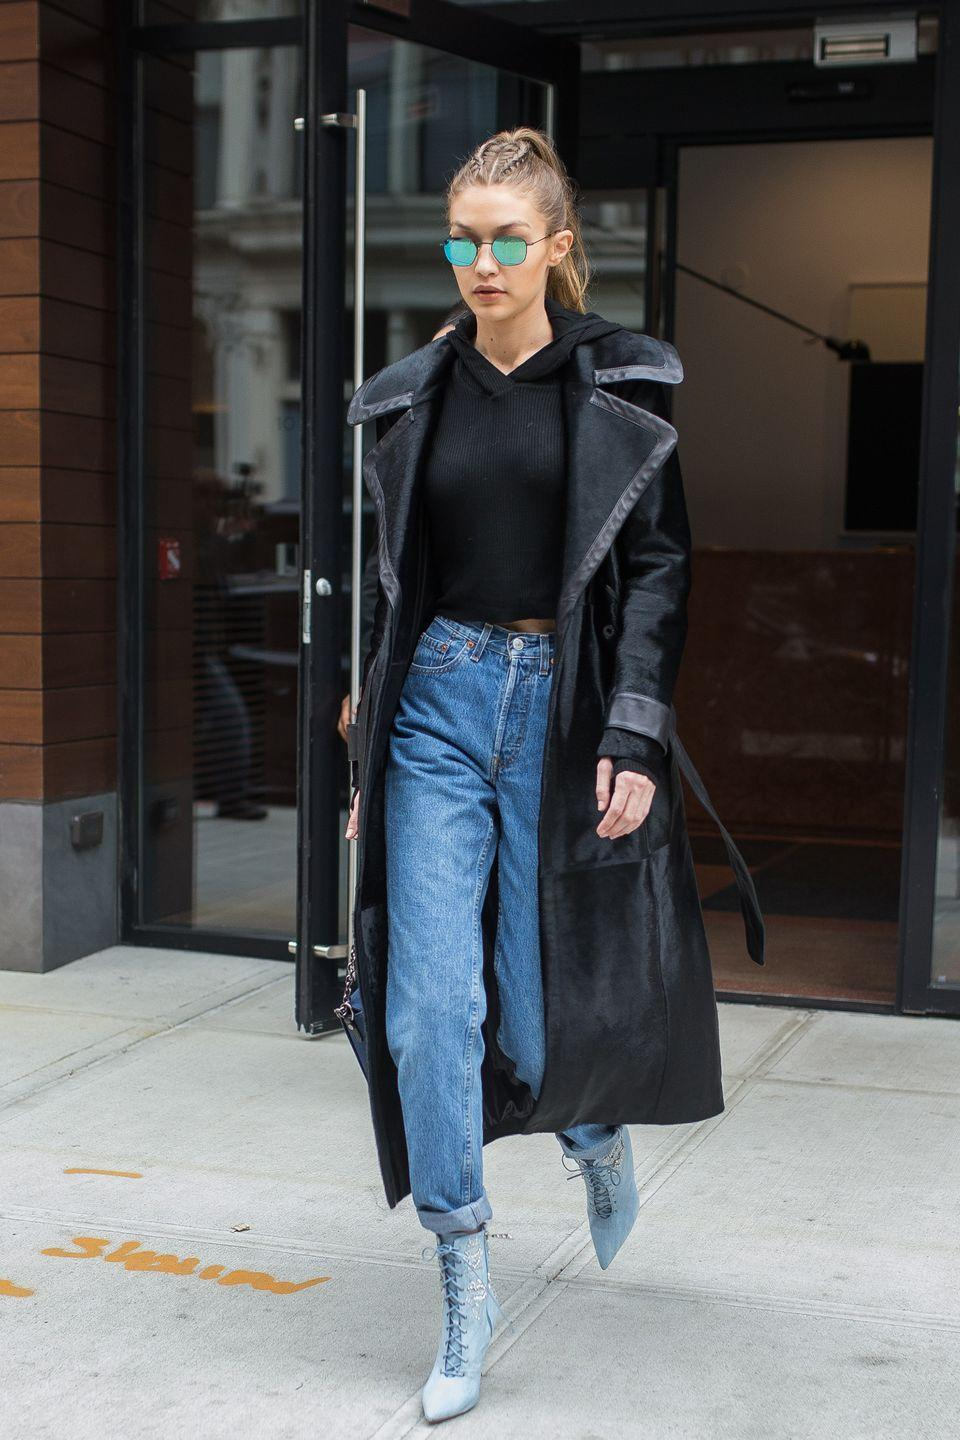 <p>In a black leather-lined coat, cropped hoodie, high-waited rolled jeans, Rihanna x Manolo lace-up ankle boots and reflective Krewe sunglasses while out in New York. </p>